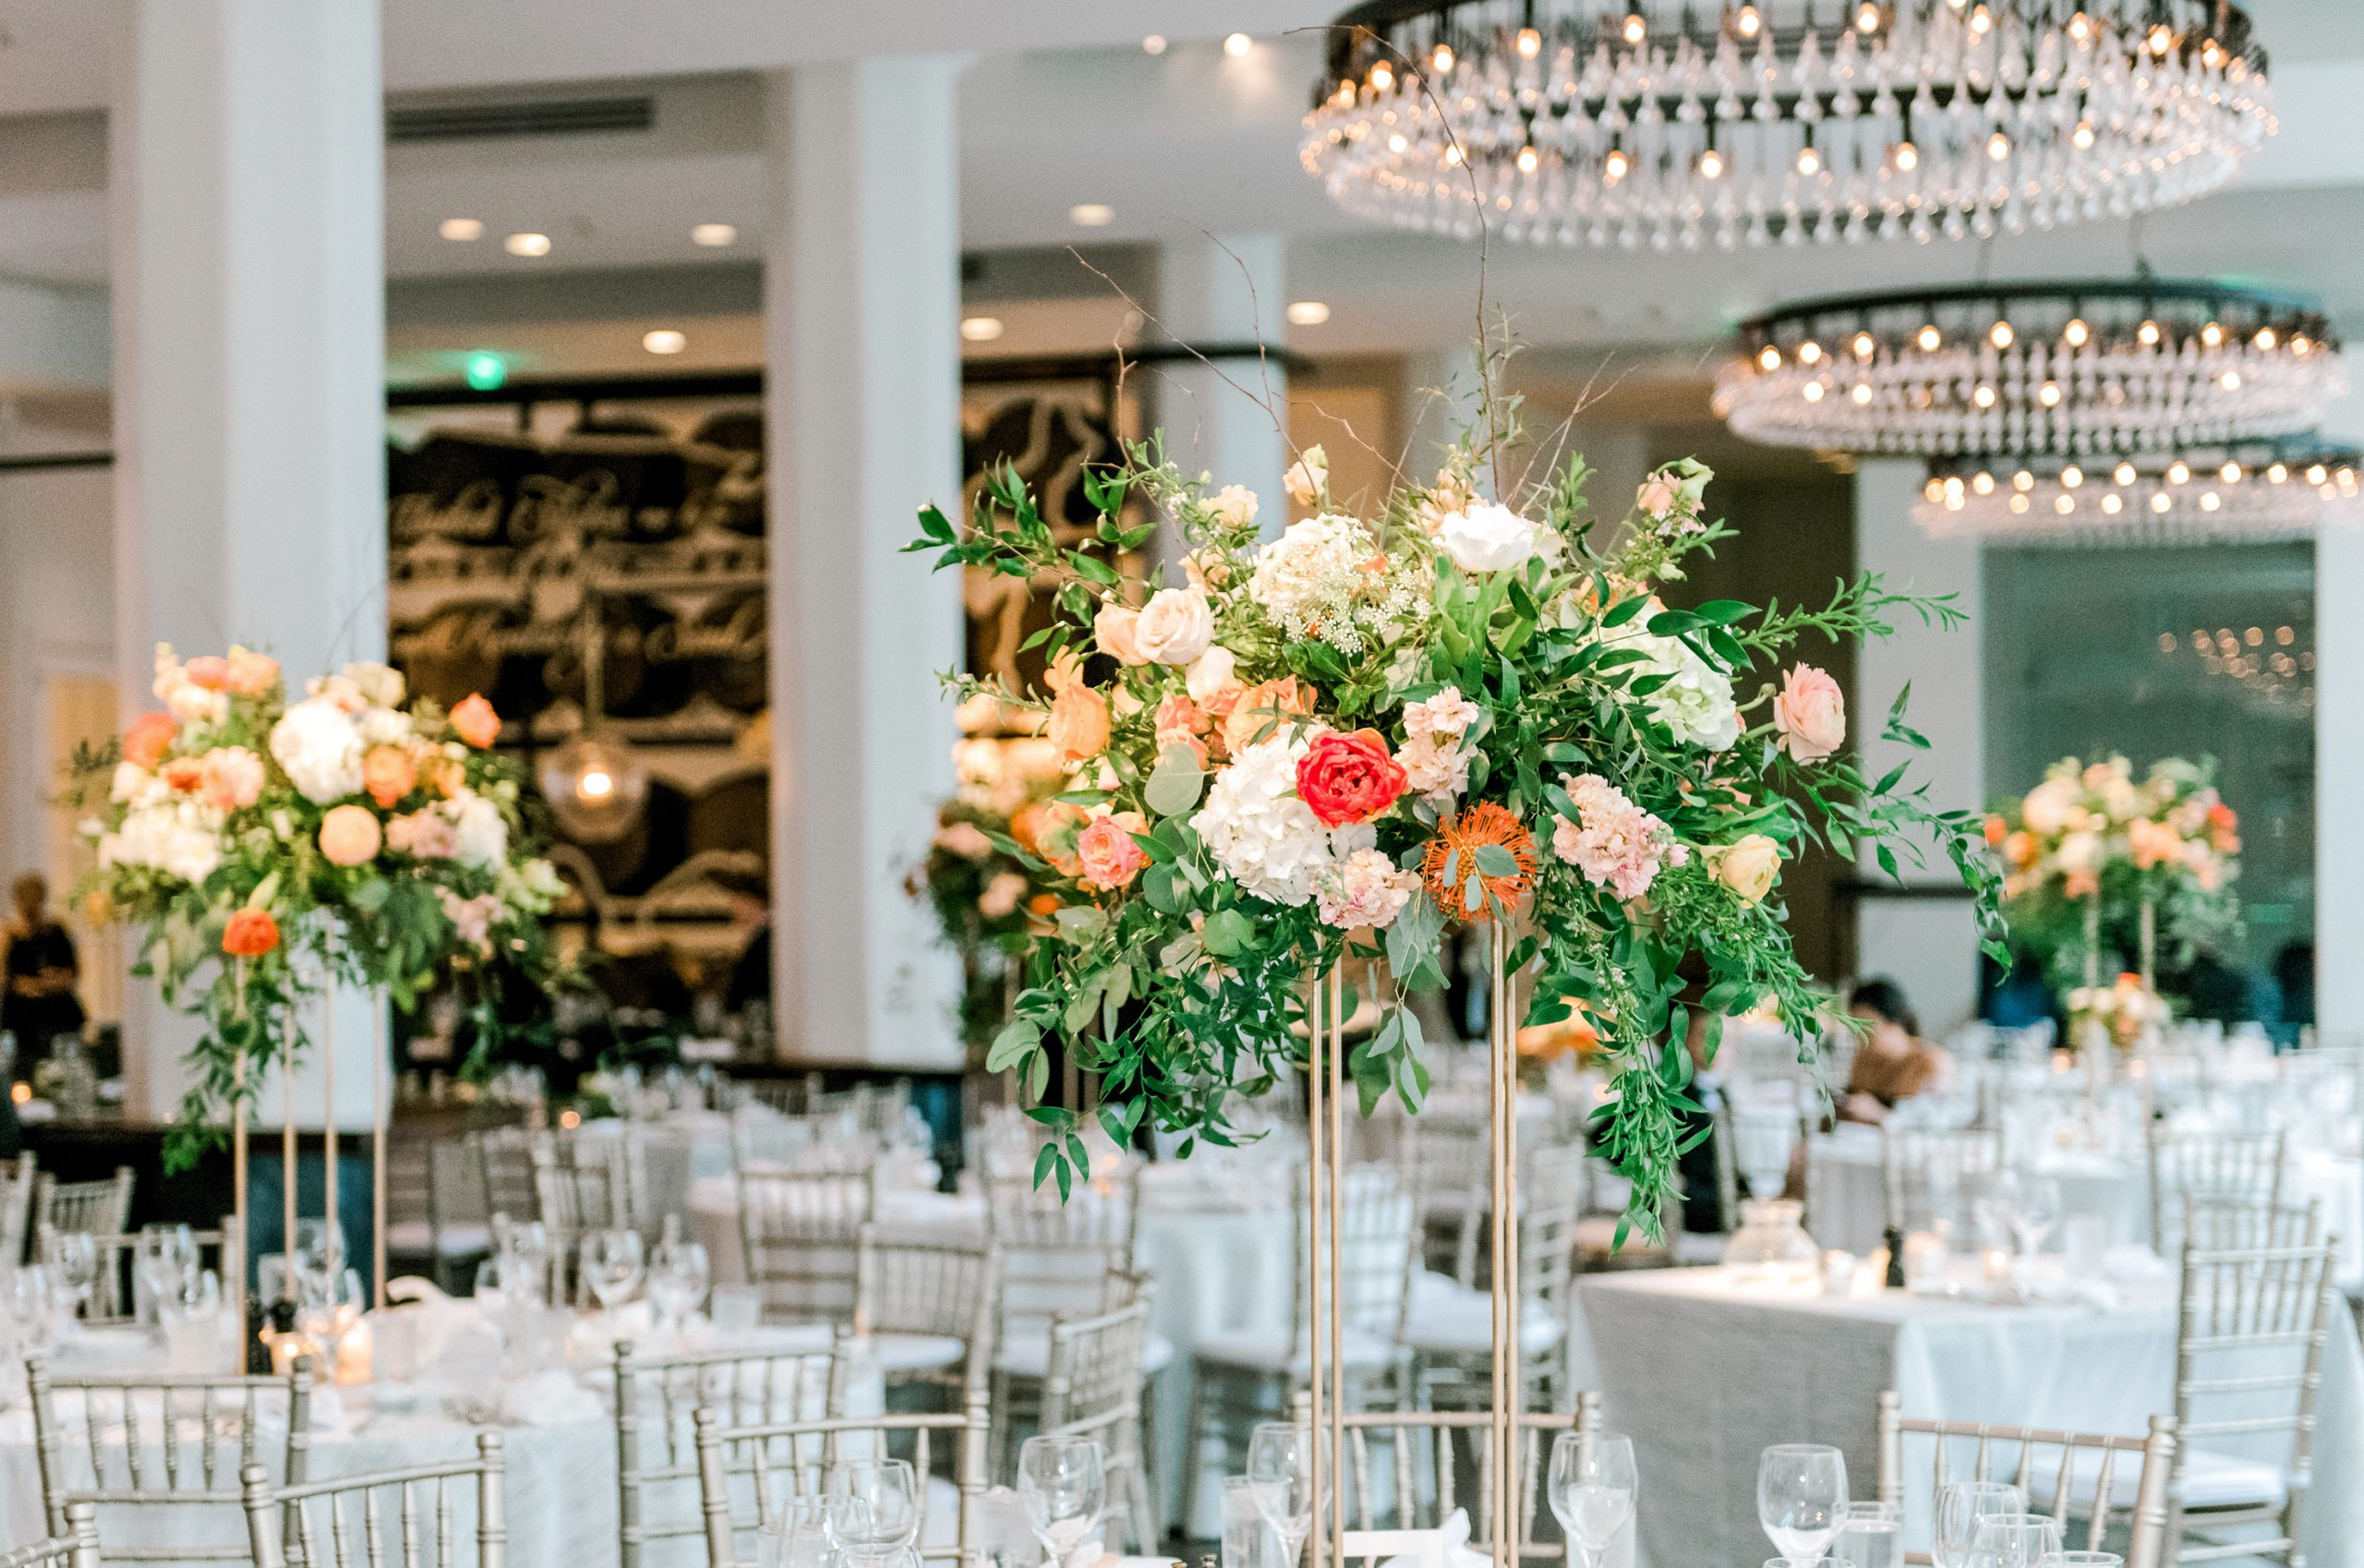 Elegant garden style tall floral centerpieces in white and peach spring flowers accented with bright orange tulips